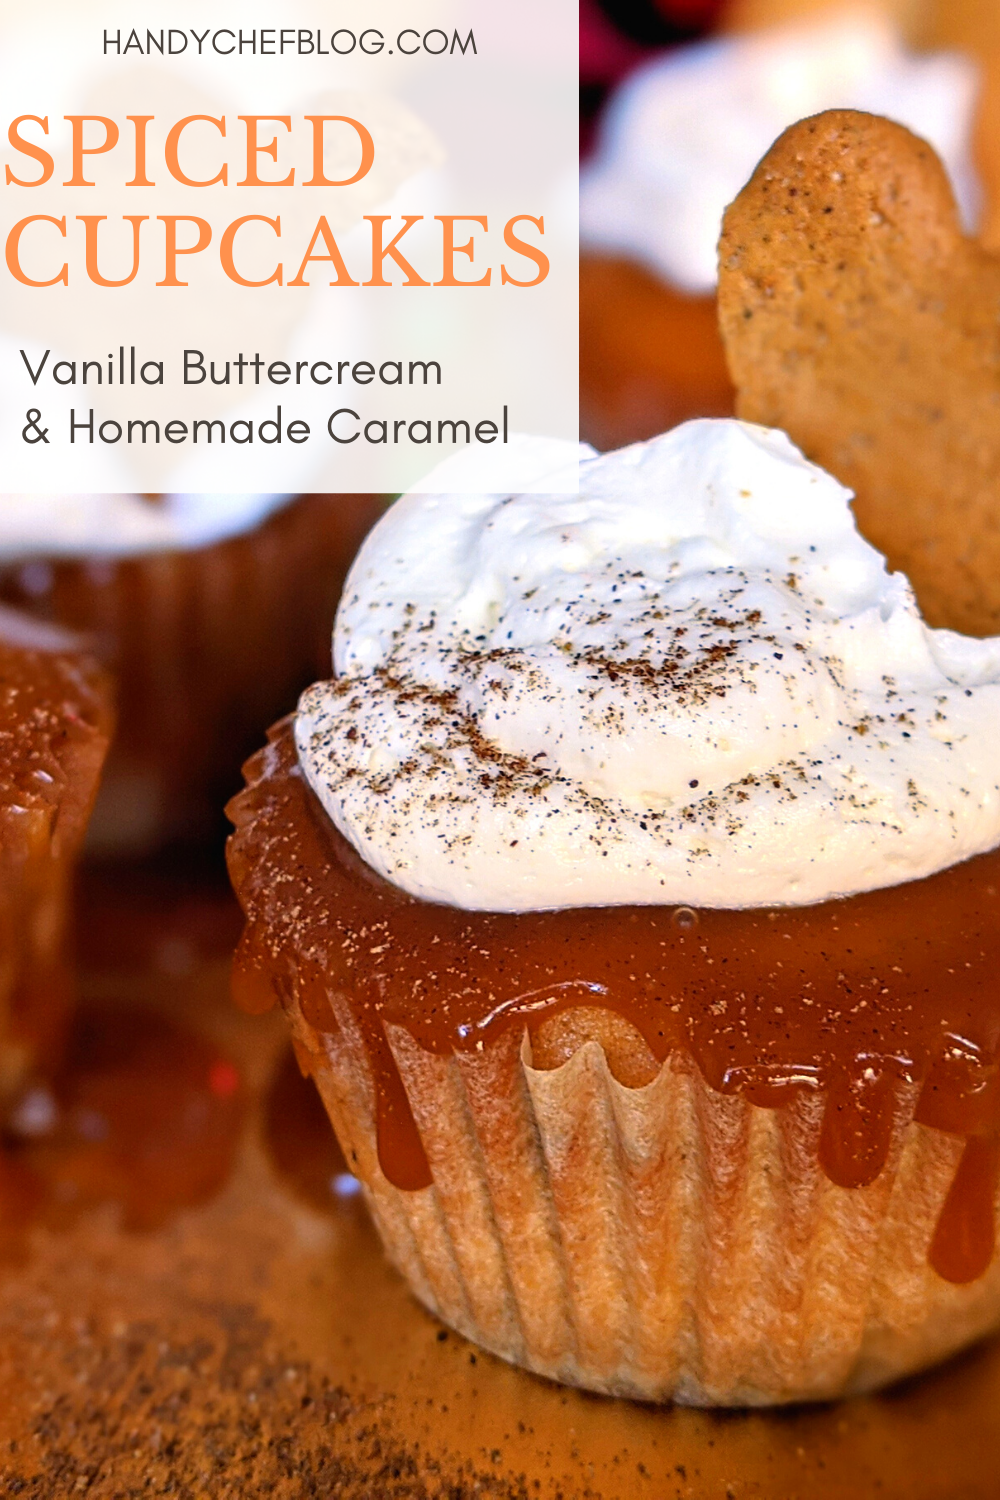 Spiced Cupcakes With Buttercream Caramel Recipe In 2020 Homemade Caramel Butter Cream Spice Cupcakes